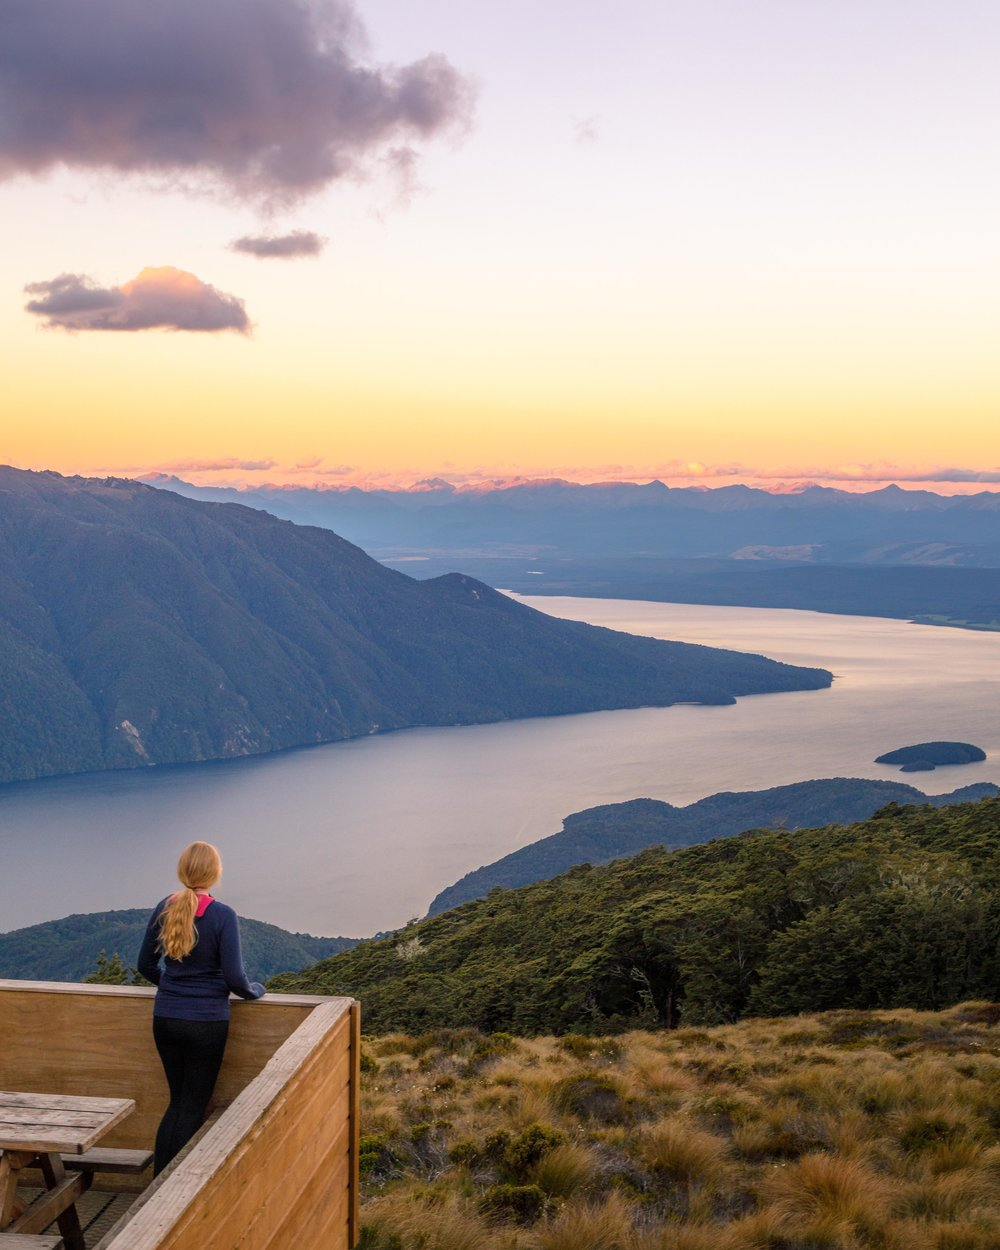 Instagrammable spots of New Zealand: Luxmore Hut on the Kepler Track